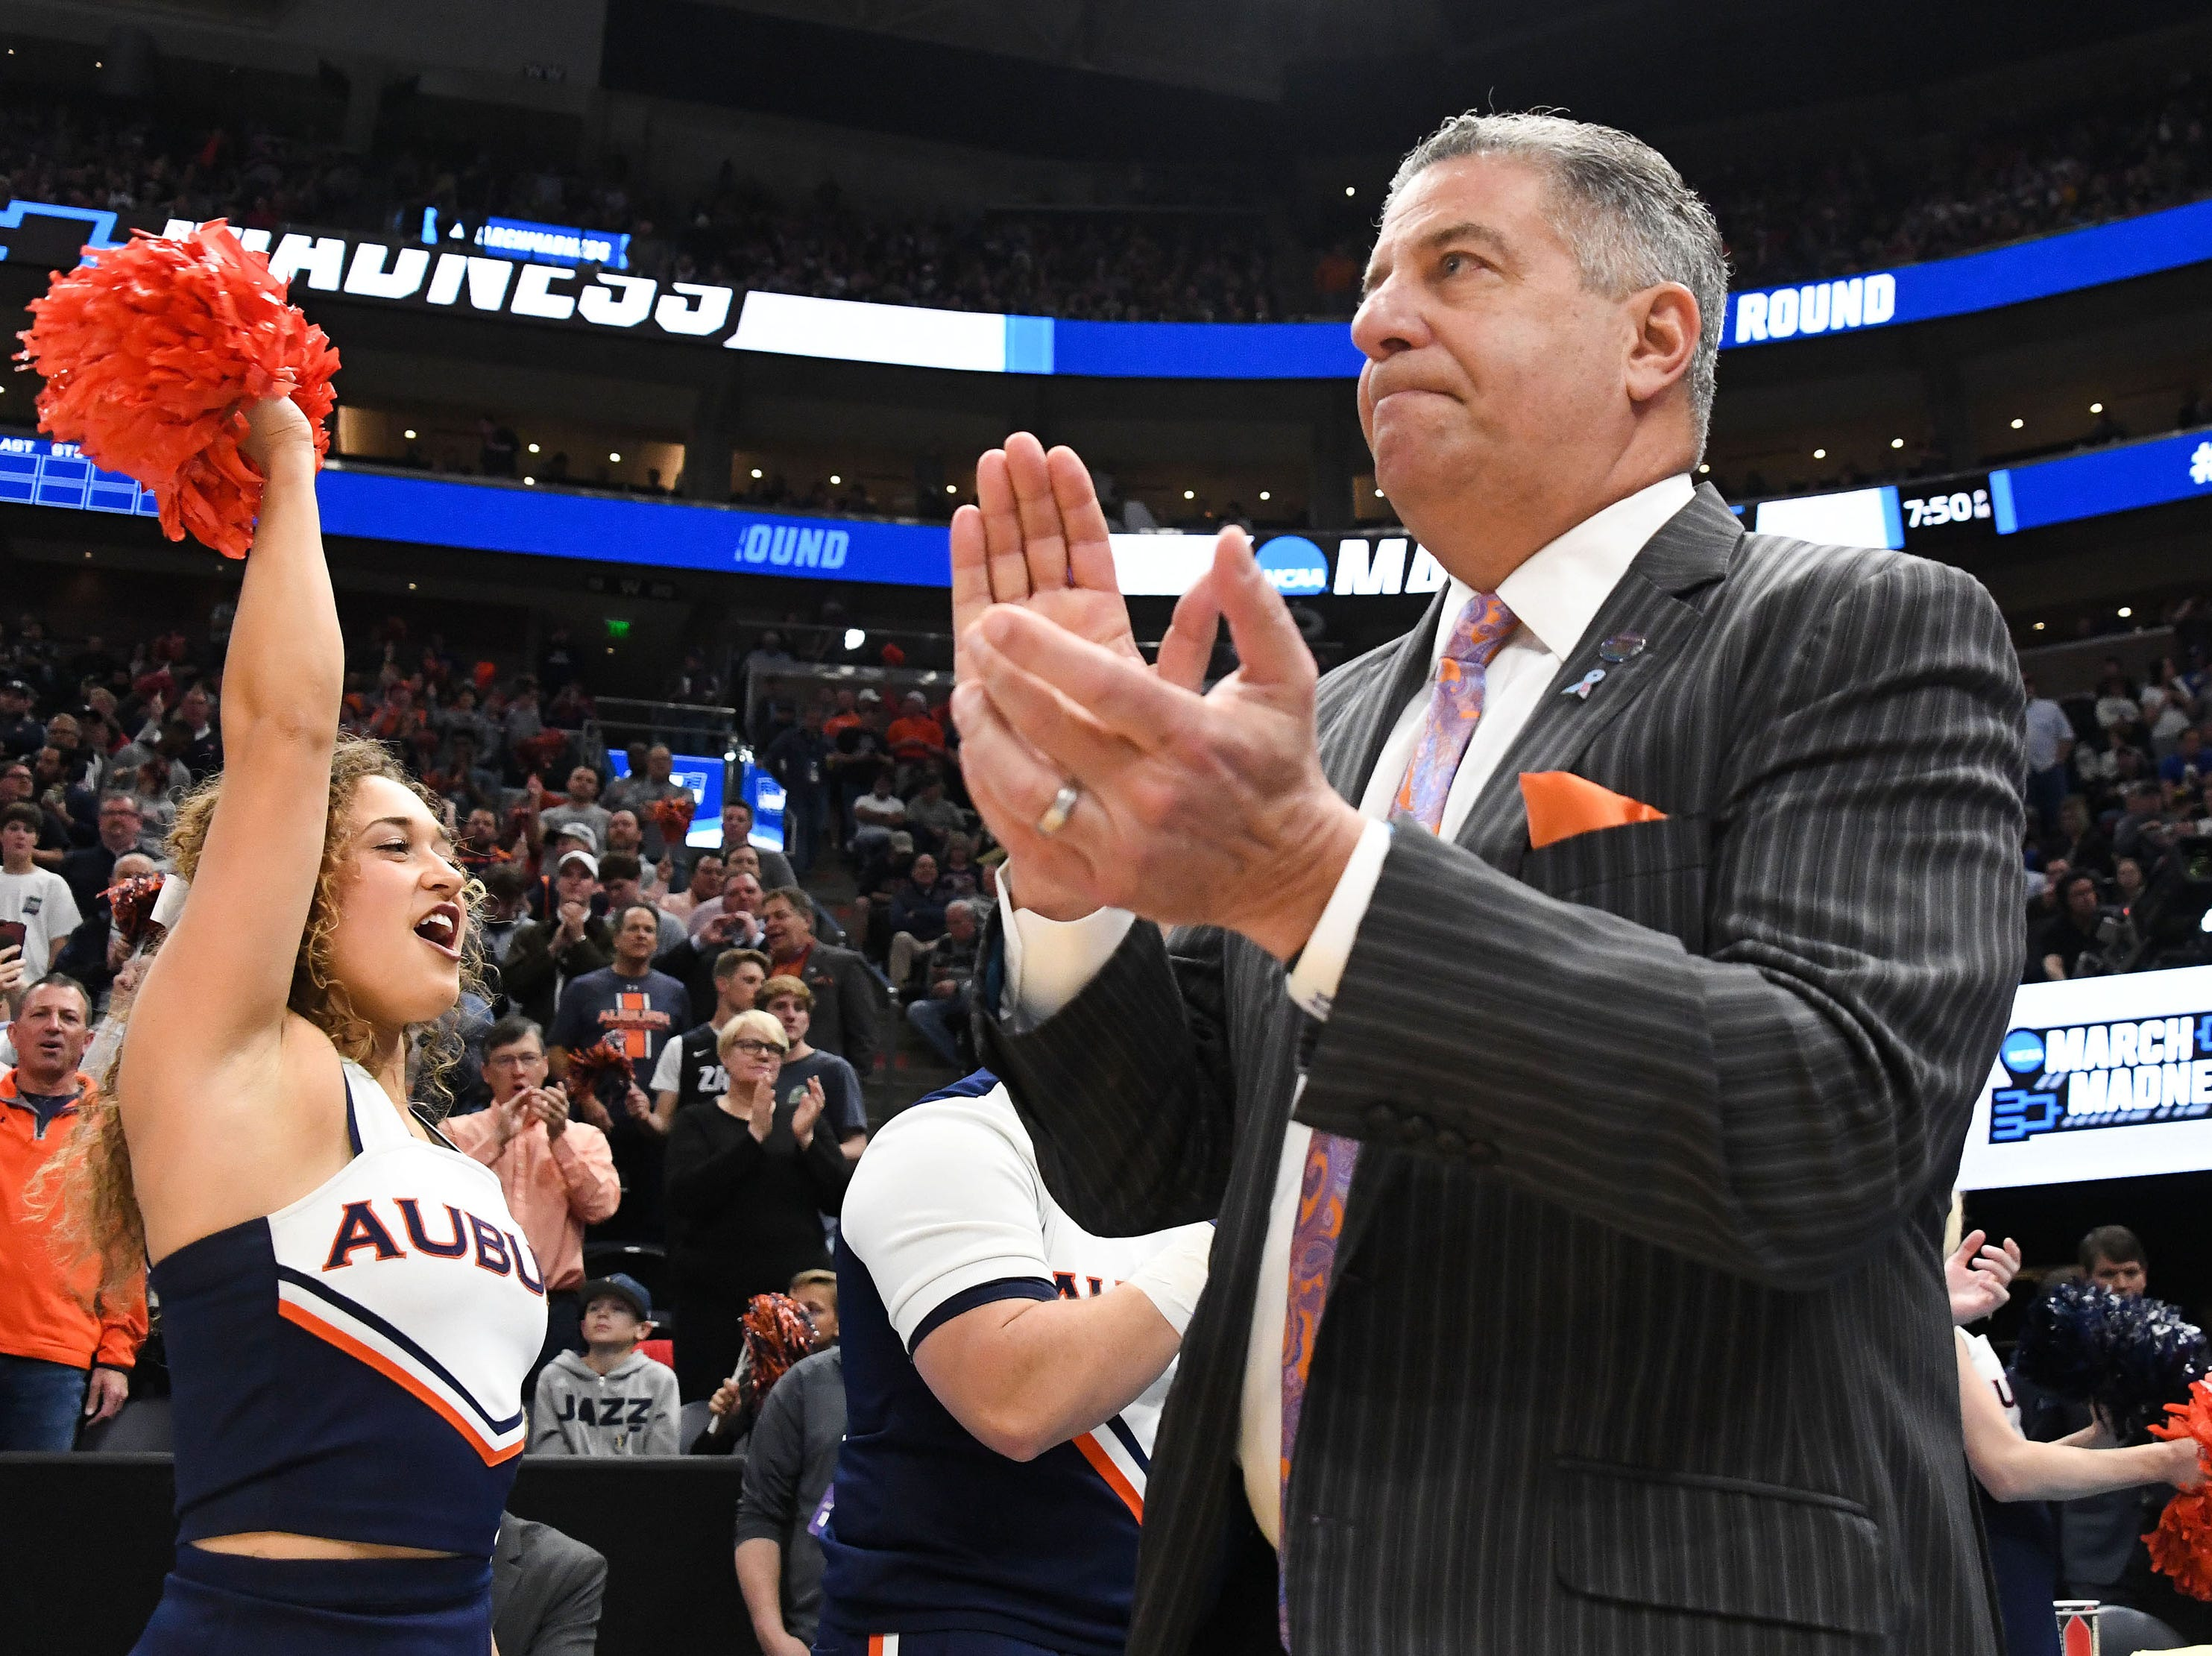 Mar 23, 2019; Salt Lake City, UT, USA; Auburn Tigers head coach Bruce Pearl arrives on the court before the game in the second round of the 2019 NCAA Tournament against the Kansas Jayhawks at Vivint Smart Home Arena. Mandatory Credit: Kirby Lee-USA TODAY Sports